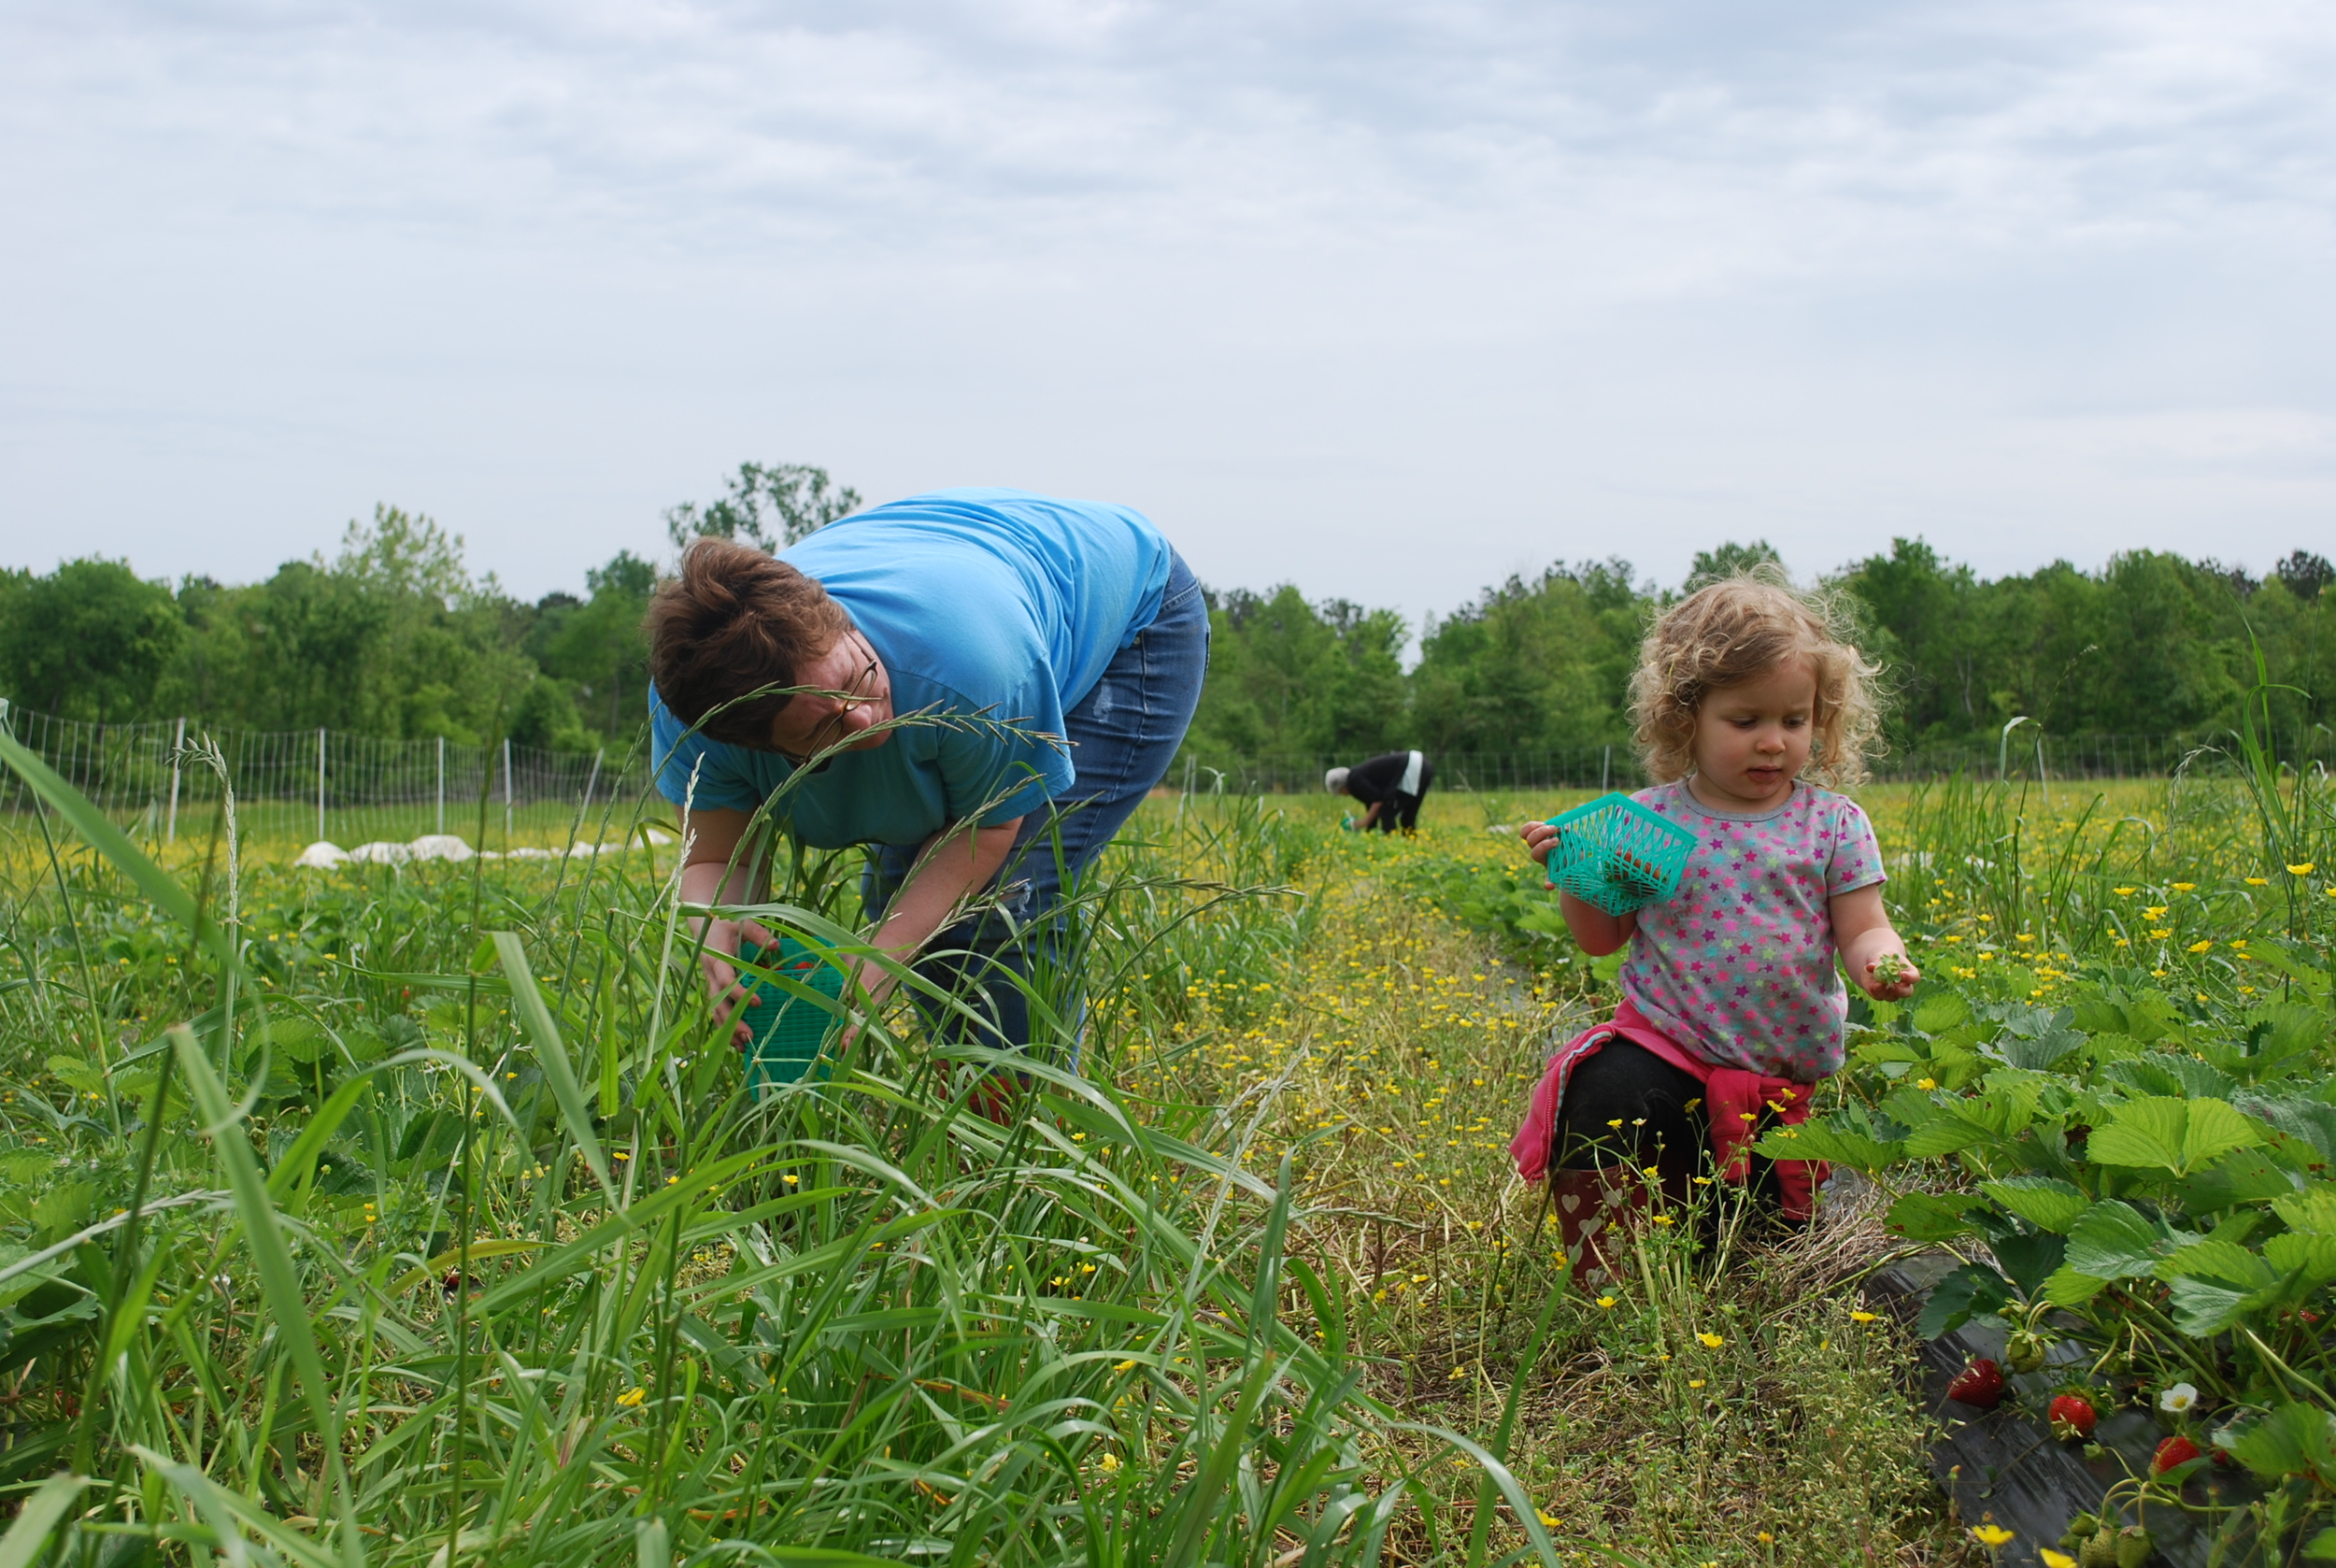 Meredith and her cute helper harvesting strawberries at Native Son Farm last April.